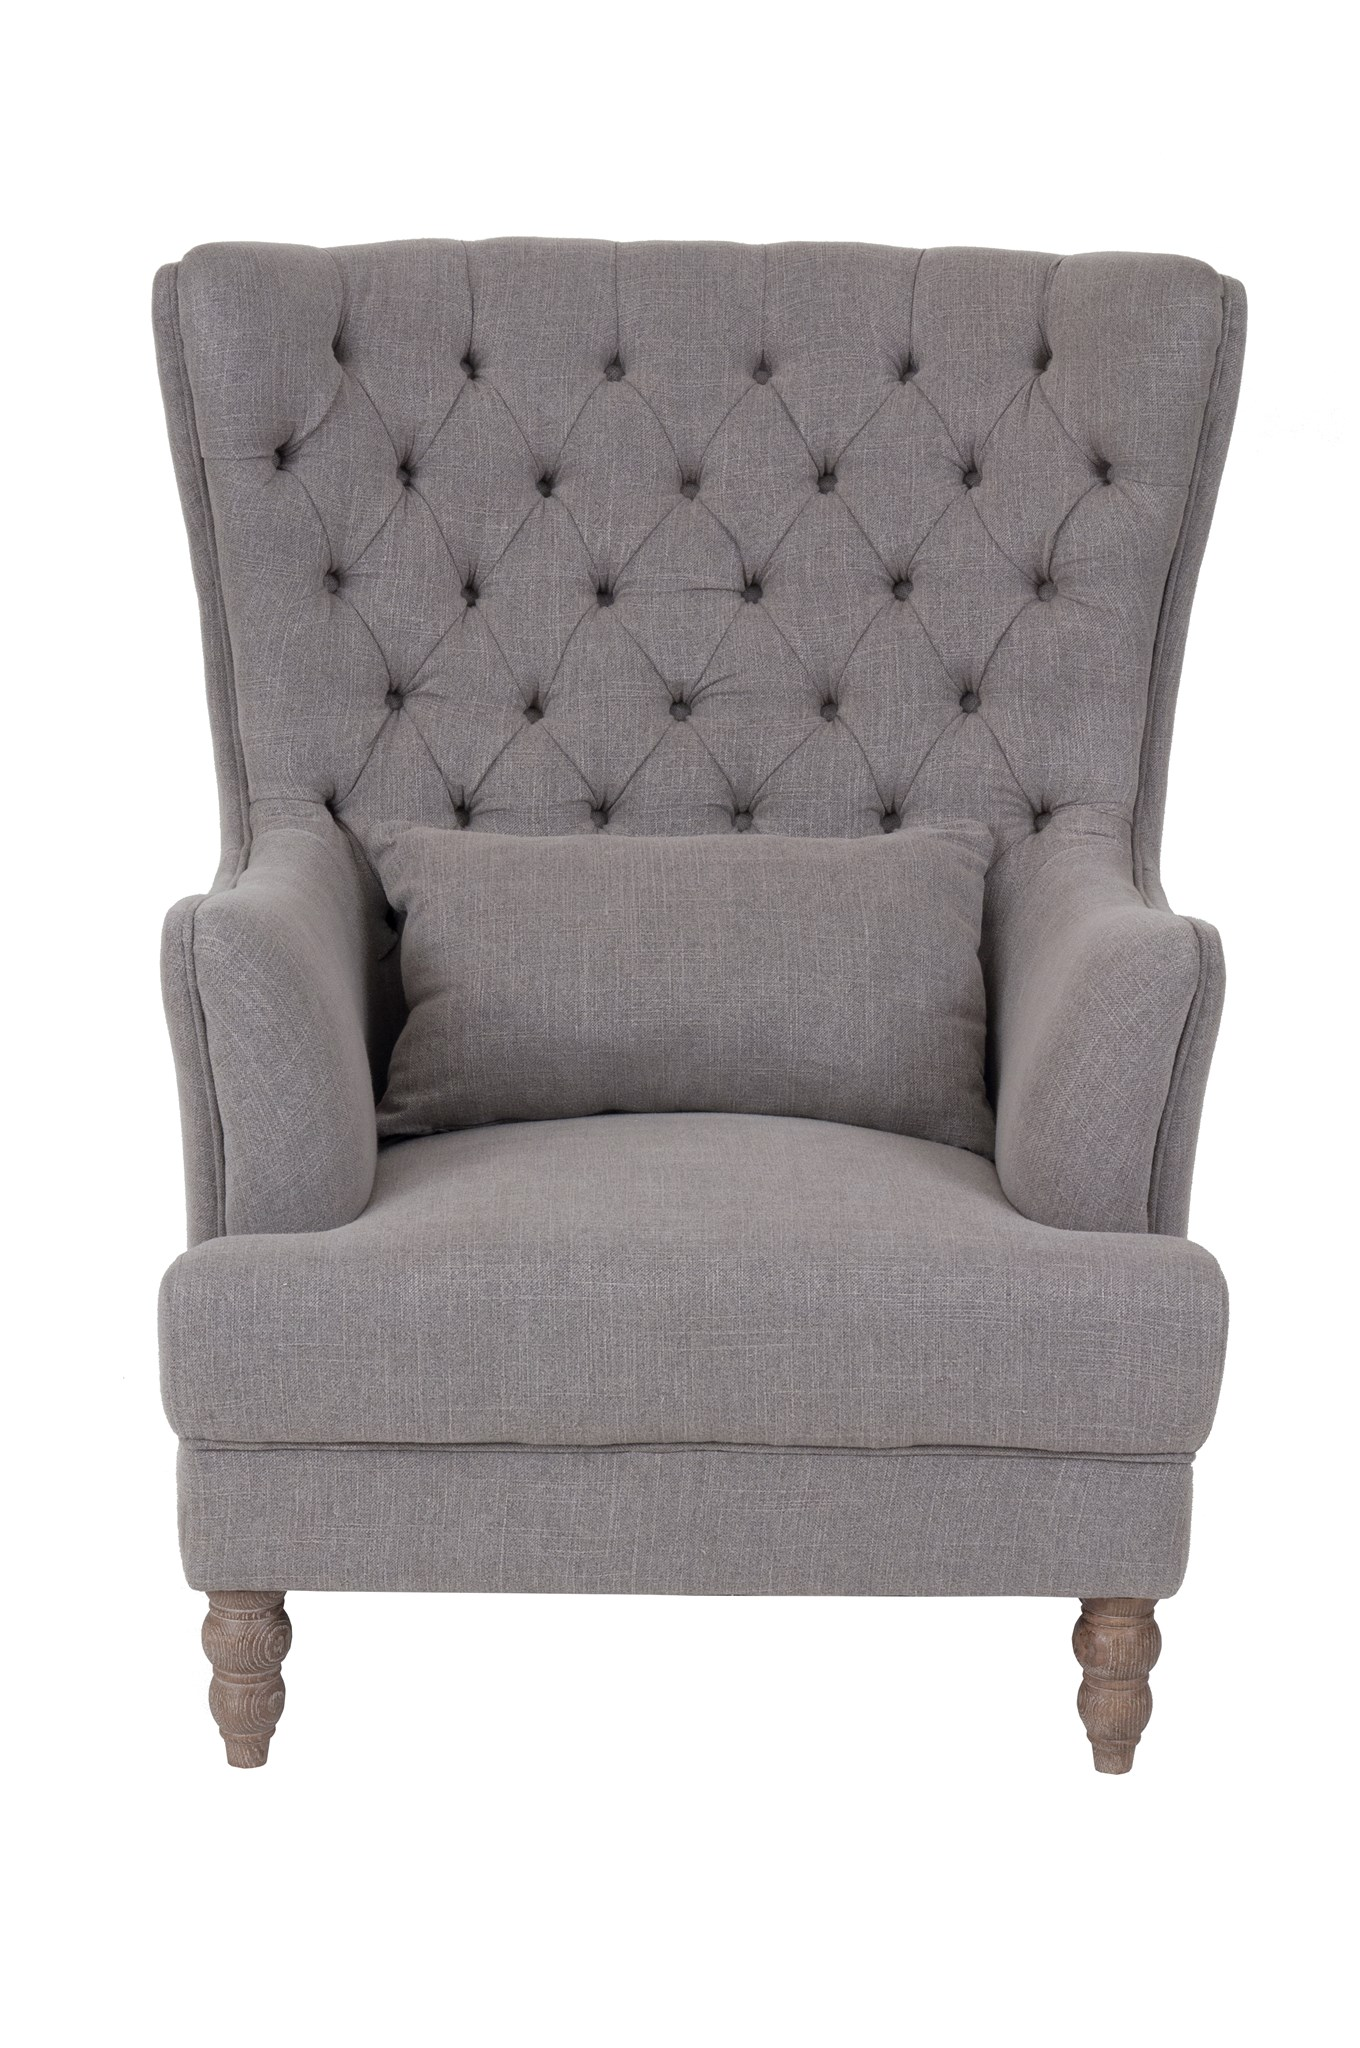 Oversized Wingback Chair Stockwell Button Tufted Oversized Wing Back Club Chair Kd Taupe